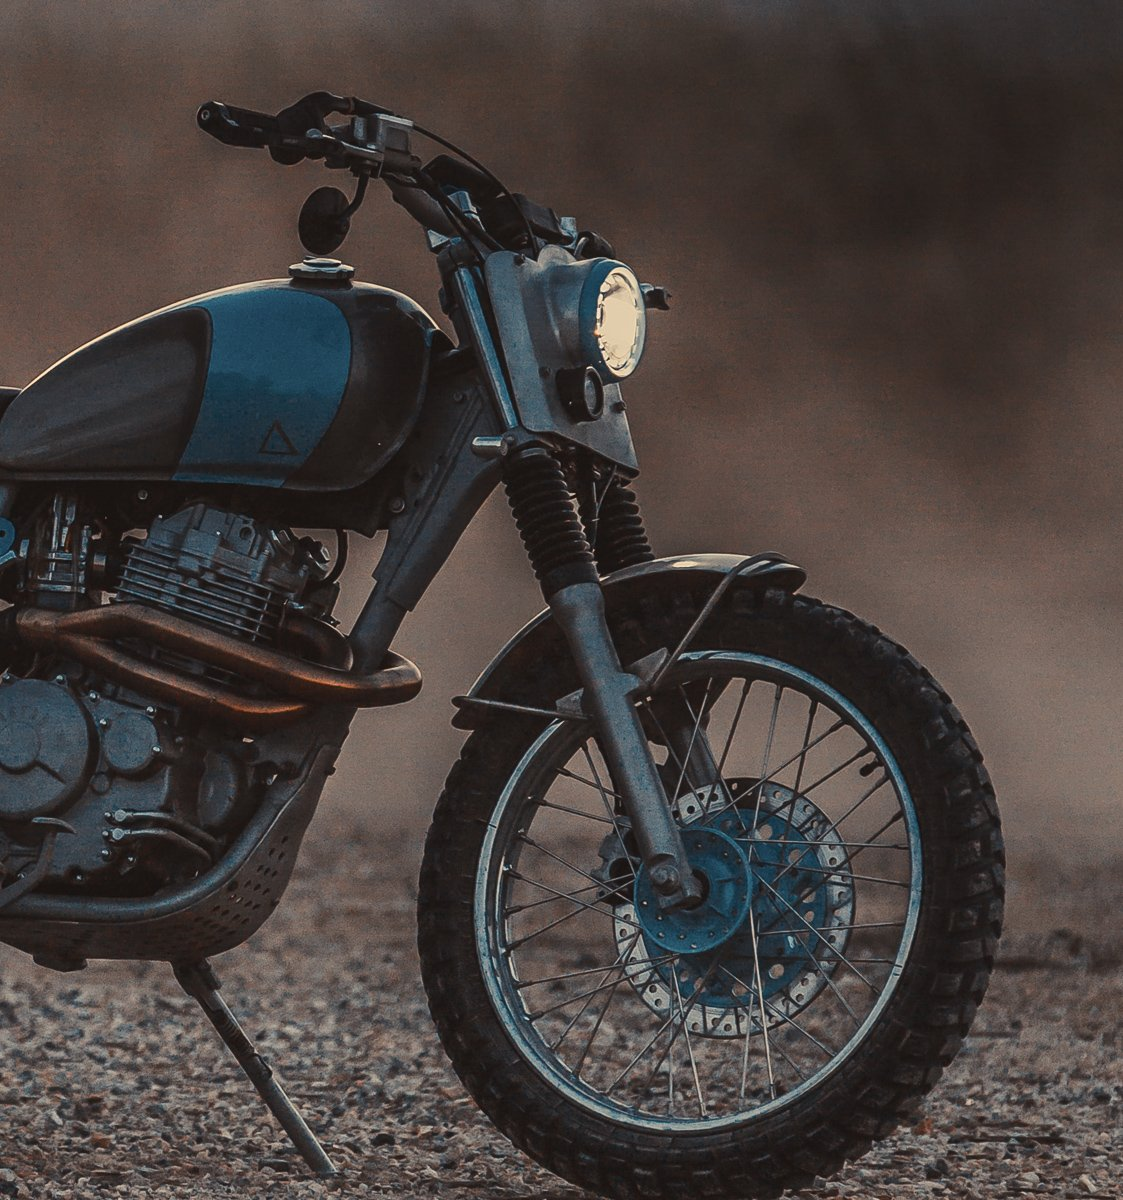 Purpose Built Moto Custom Motorcycle Projects - Wide Of The Mark